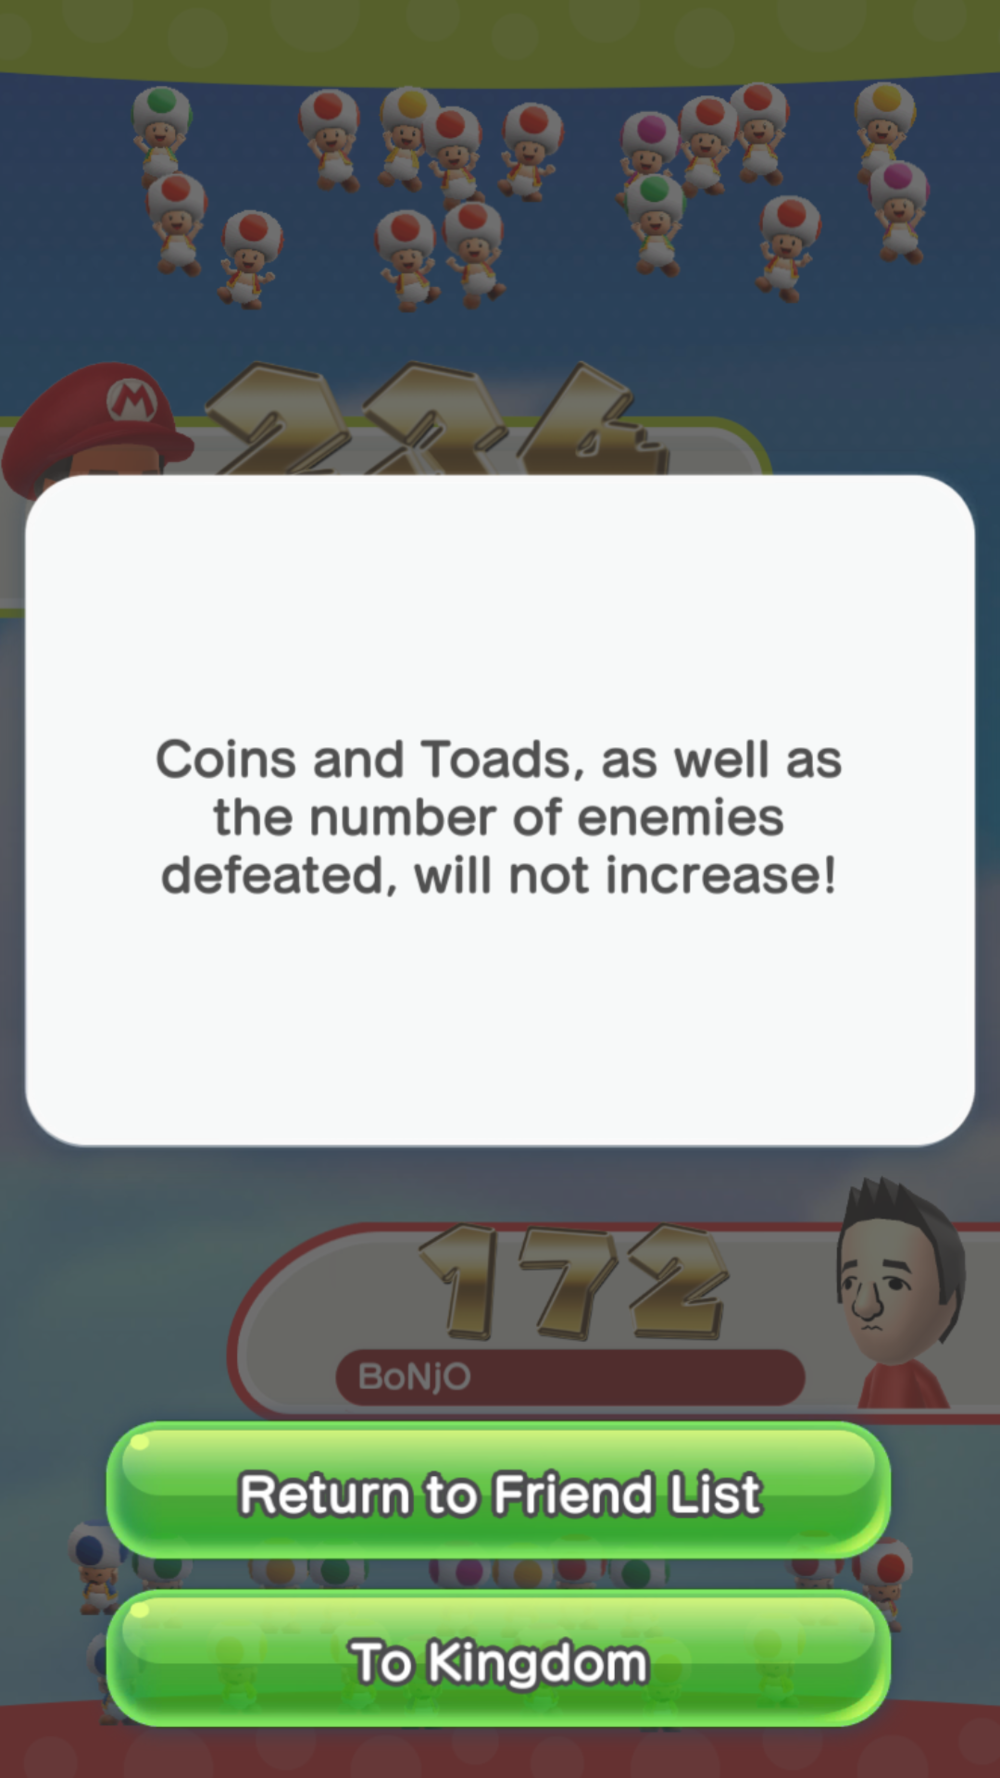 Friendly Run Results in Super Mario Run